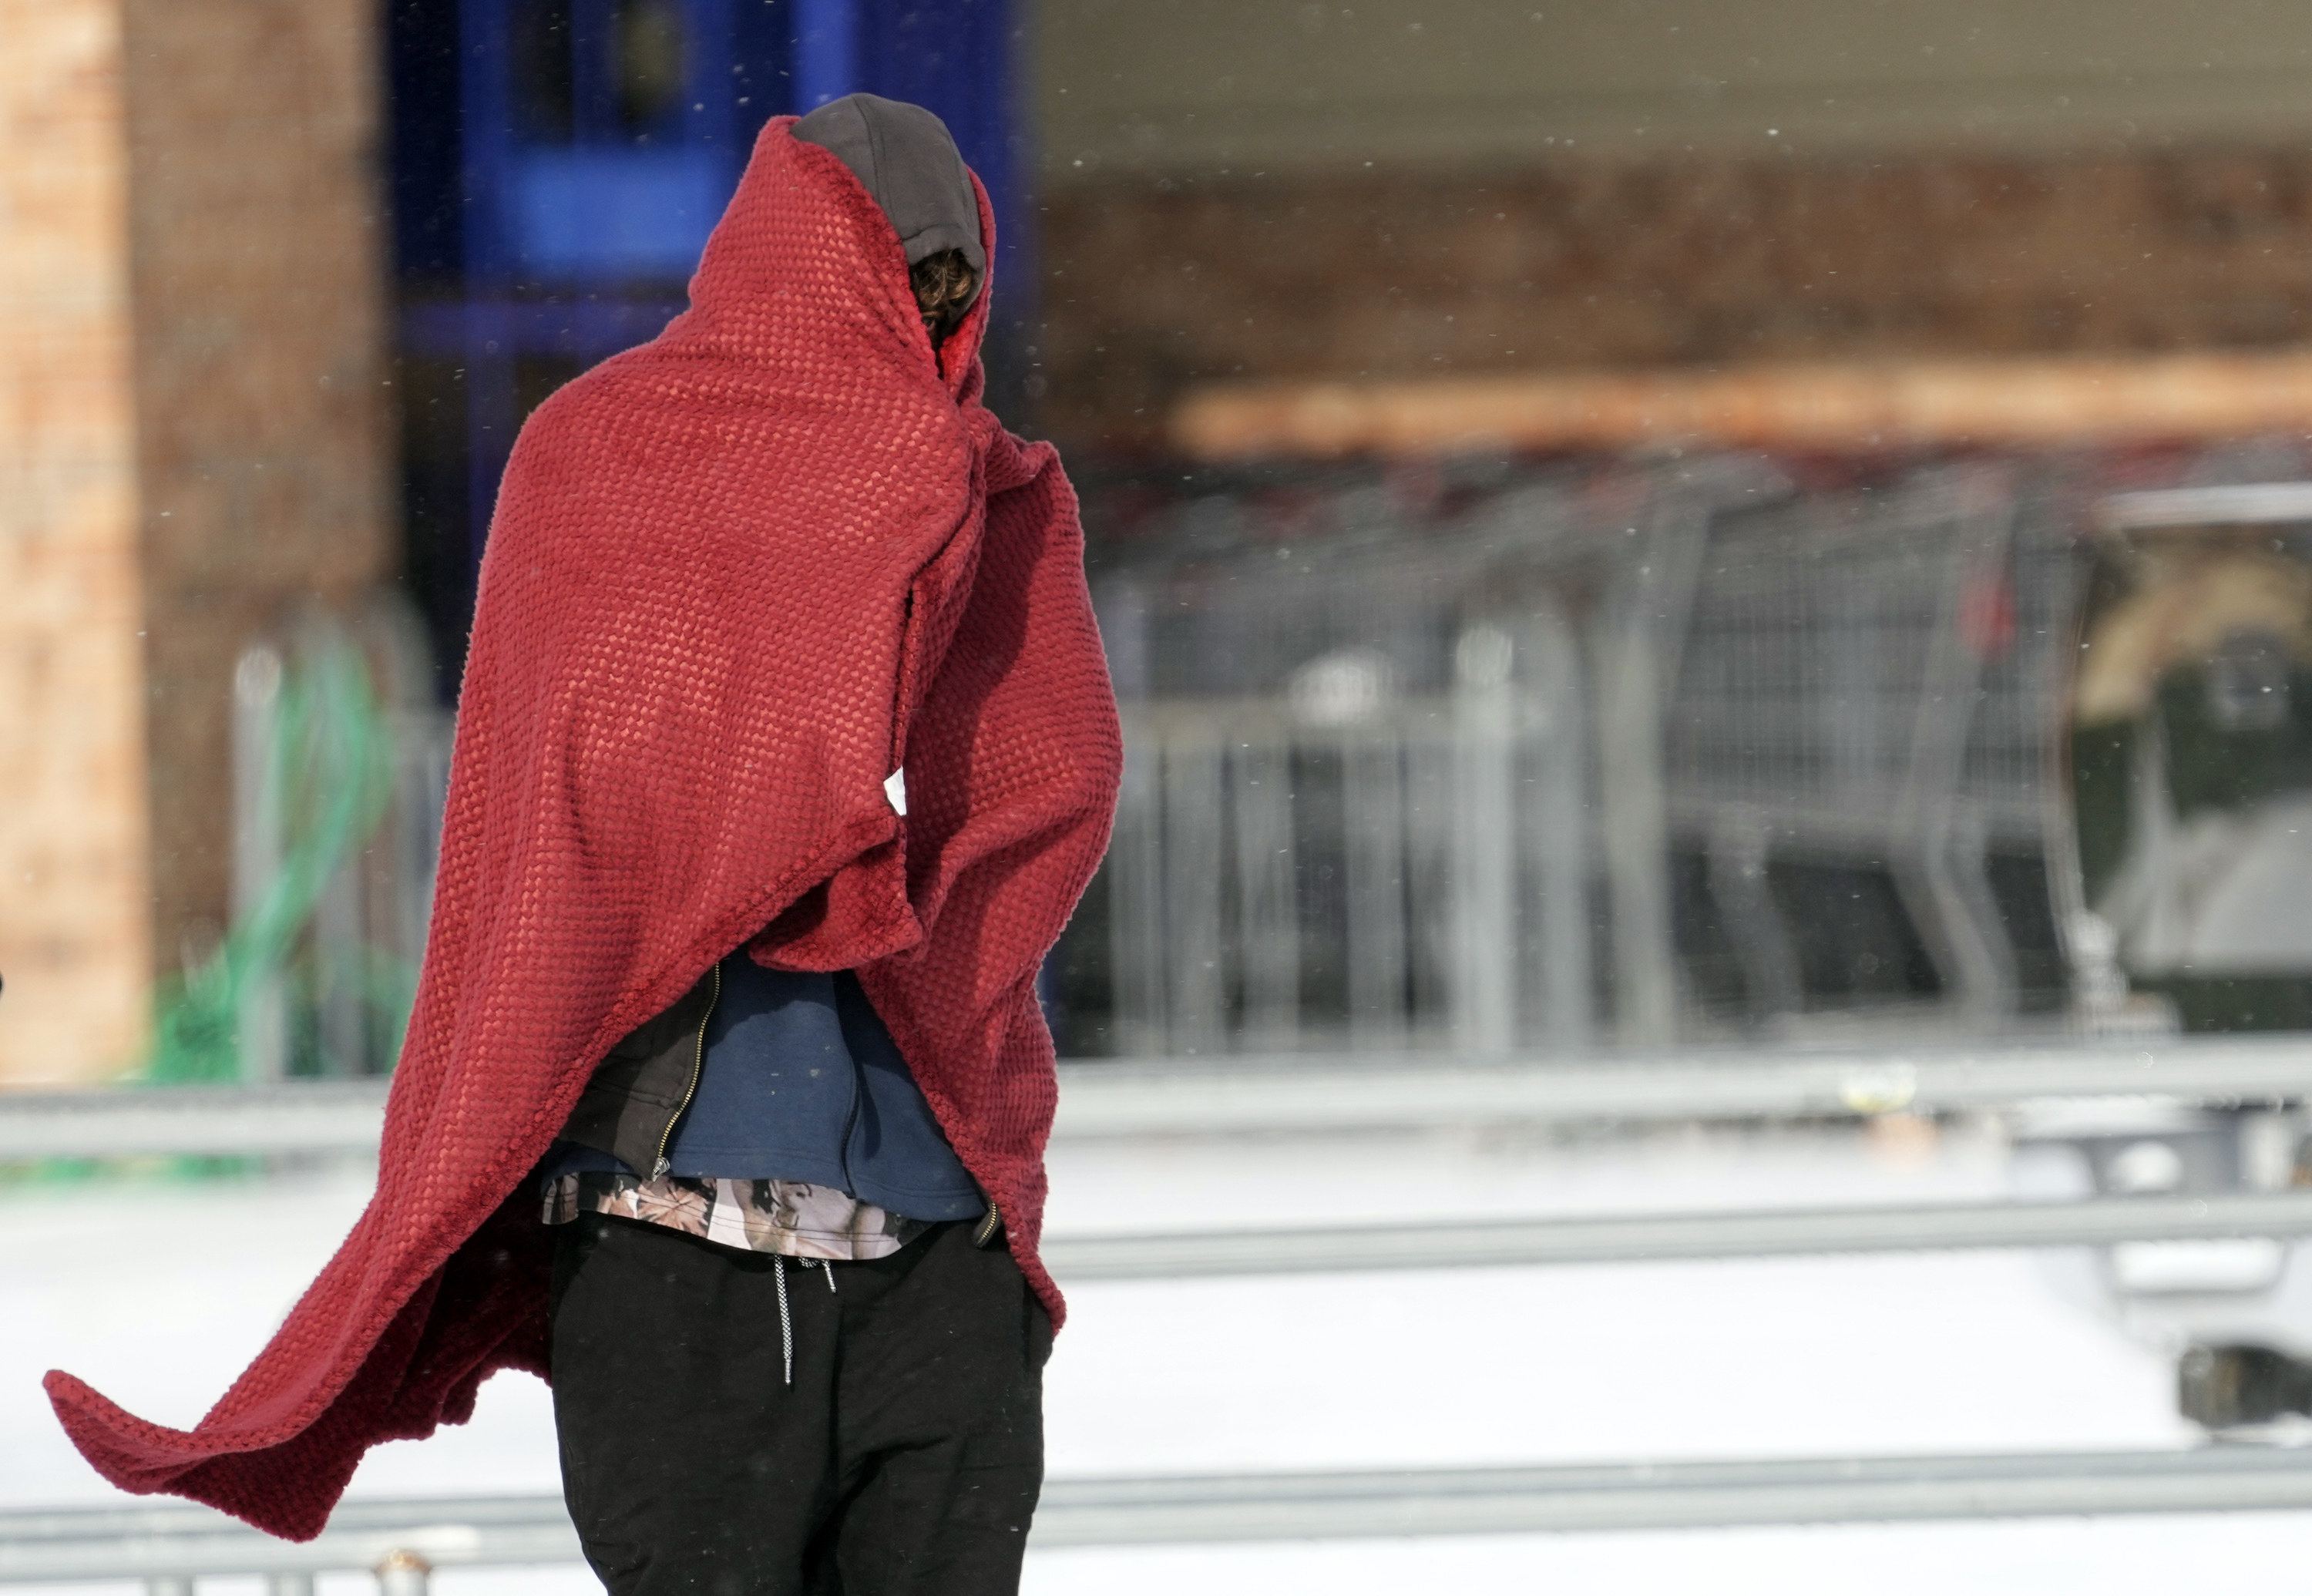 A man walks around with a sweatshirt and blanket to stay warm